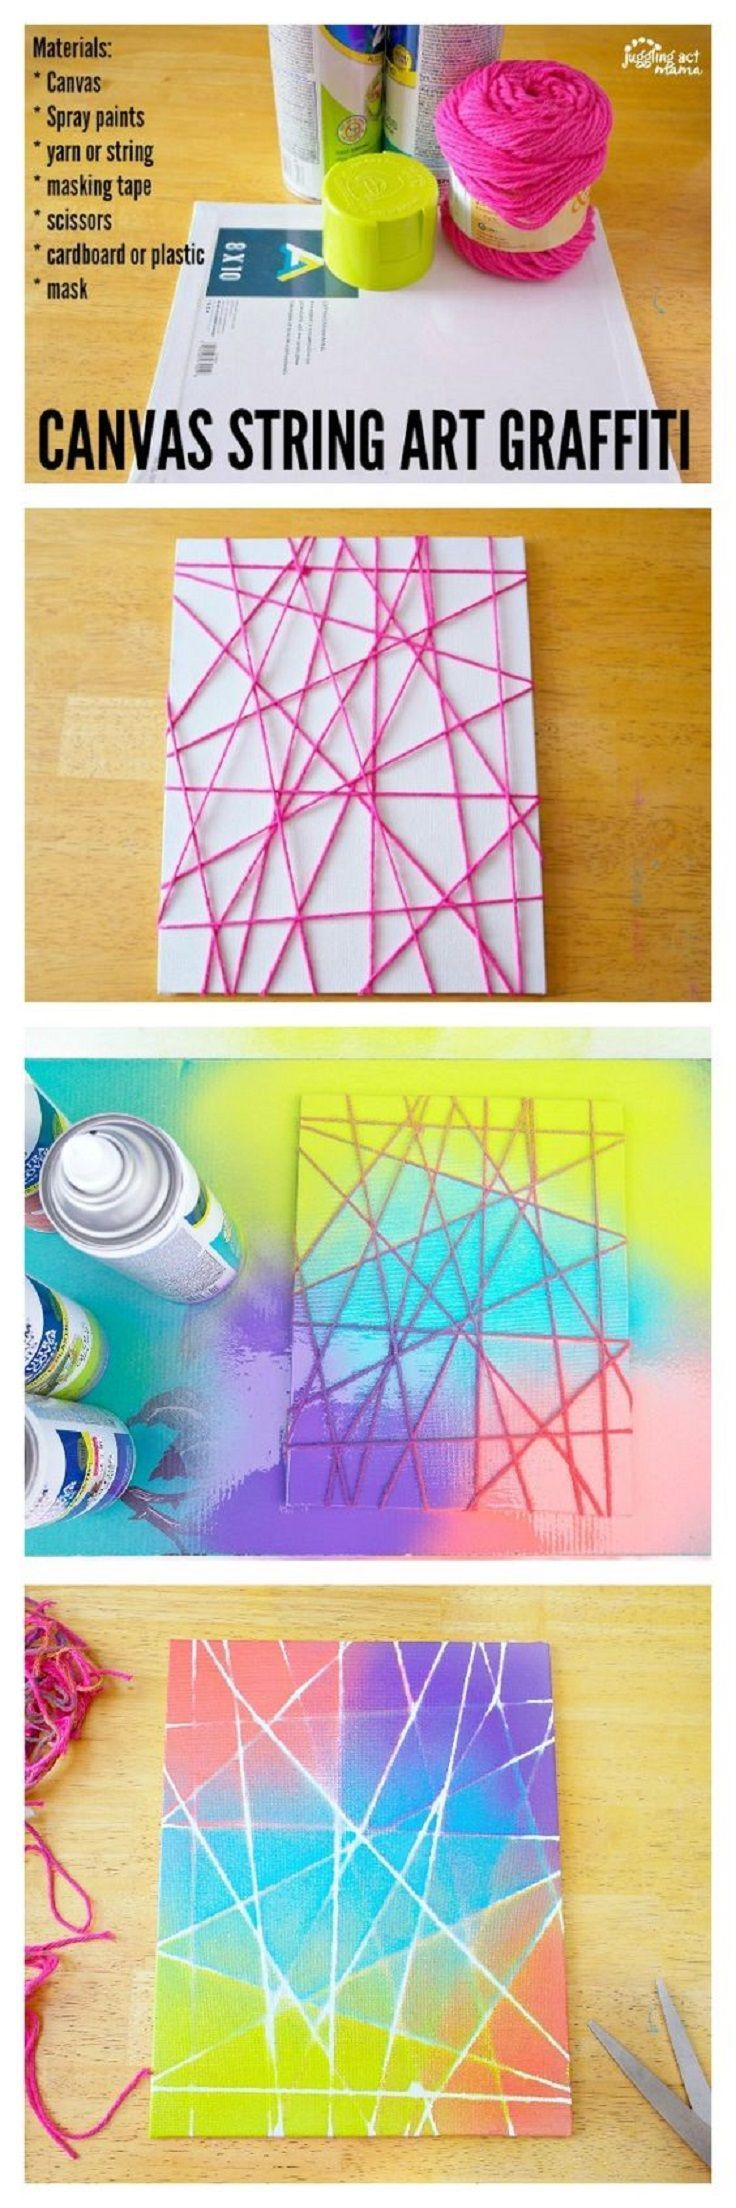 Canvas String Art Graffiti – 12 summery DIY projects to immerse yourself in the new season …..   – Backen